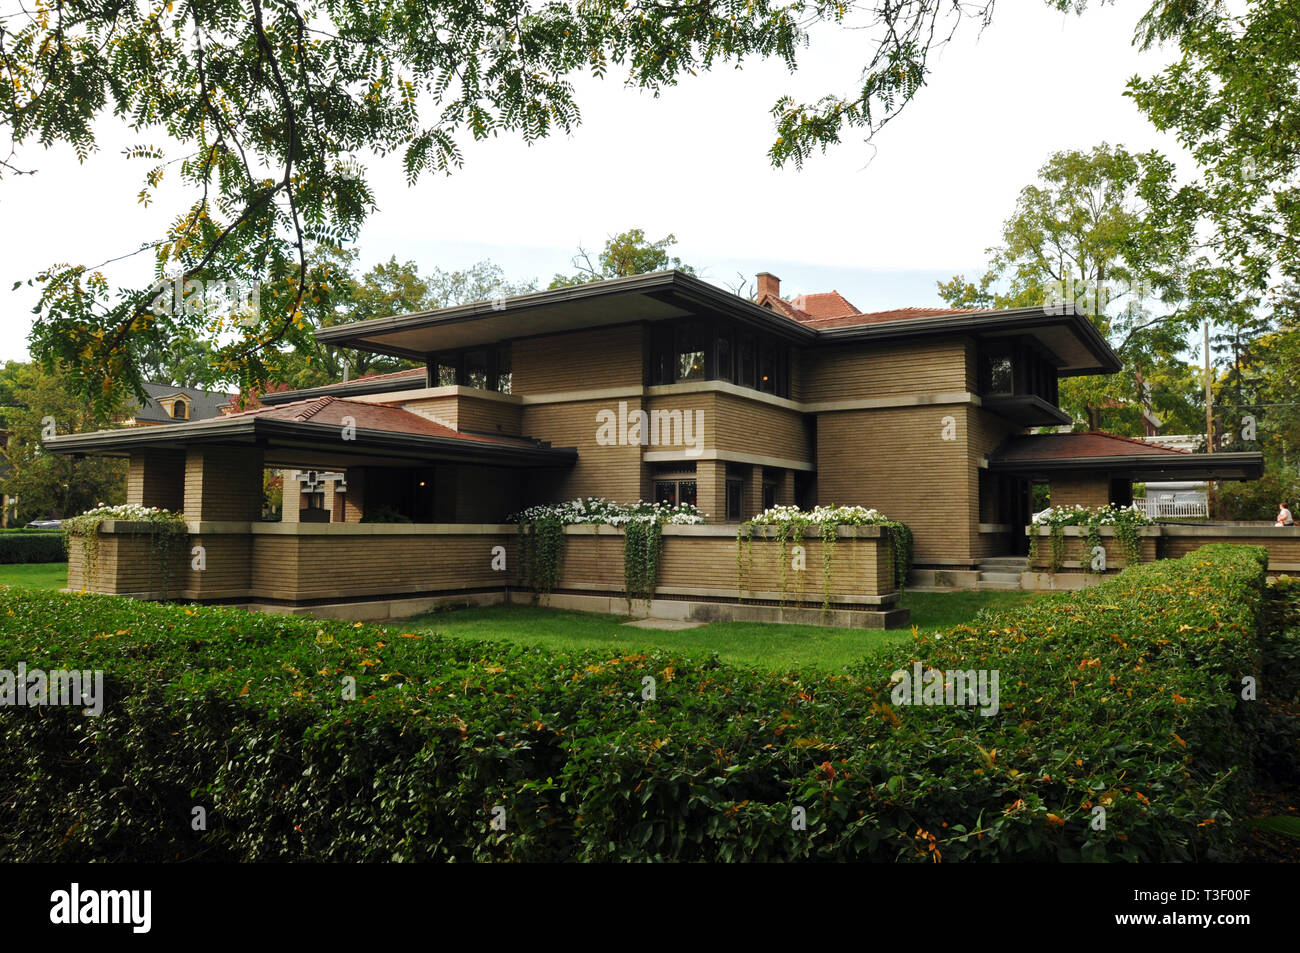 The Meyer May House in Grand Rapids, Michigan. The Prairie-style home, designed by architect Frank Lloyd Wright, was completed in 1909. Stock Photo